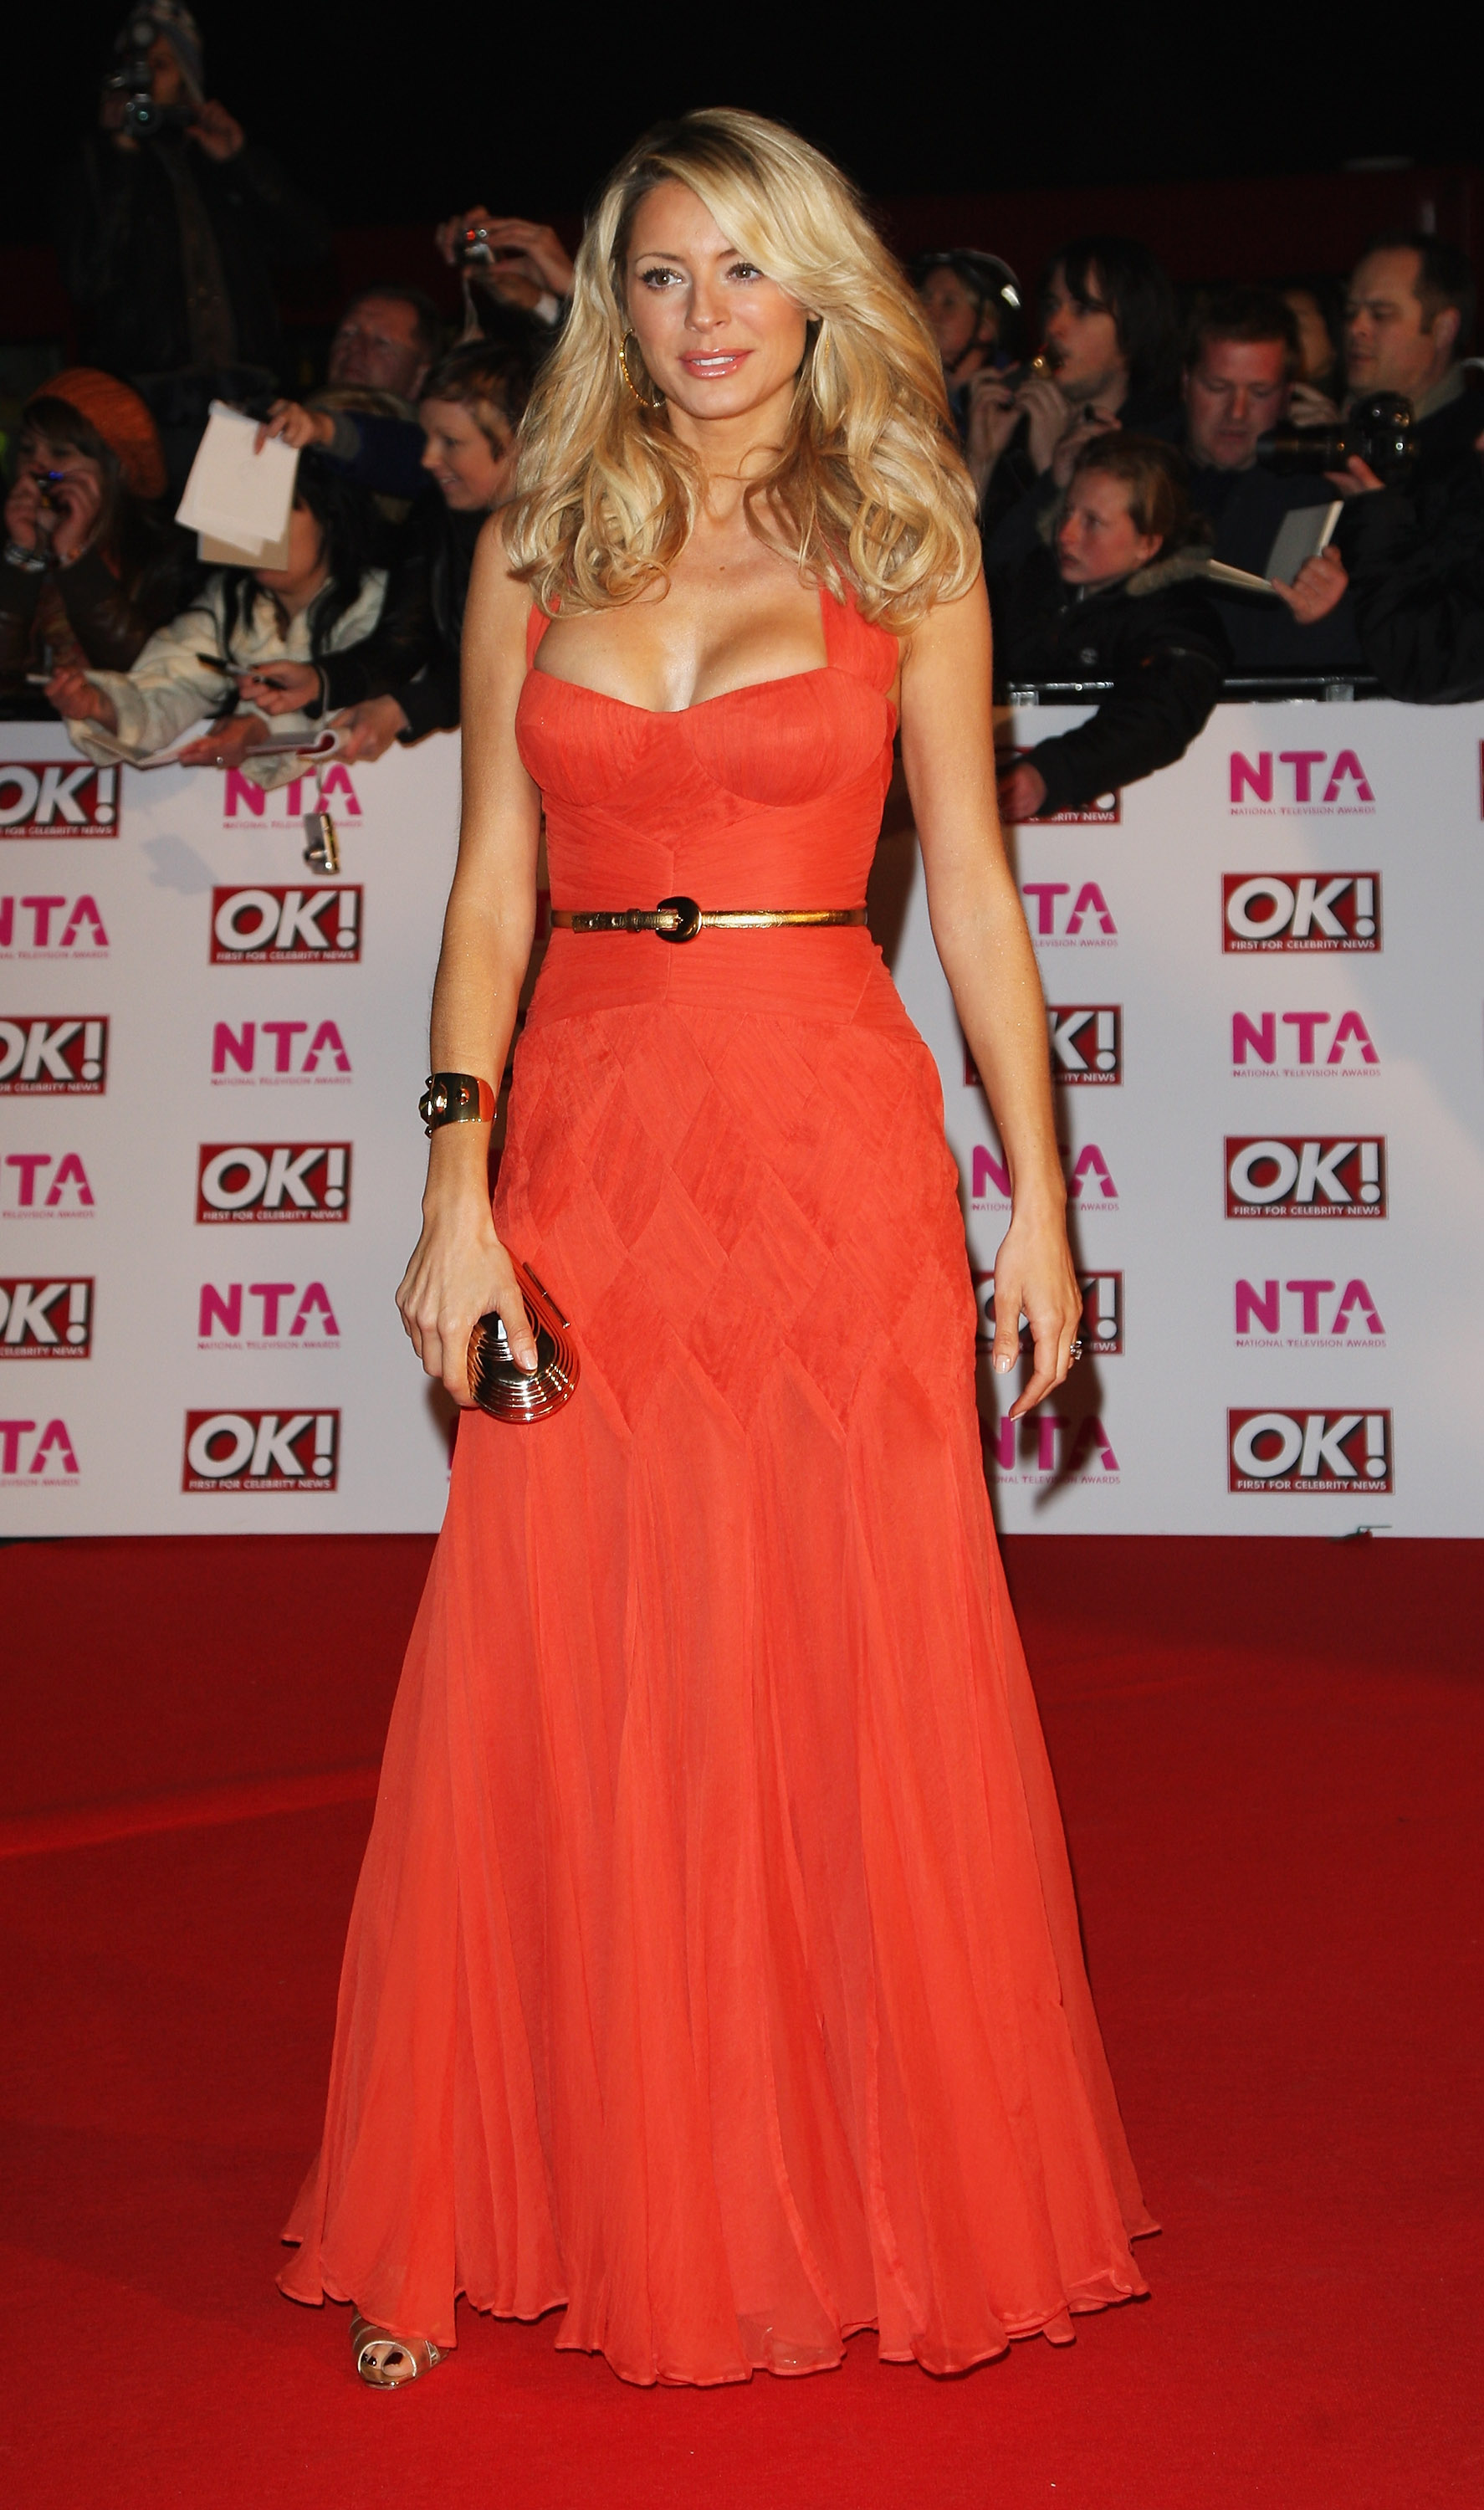 18183_Celebutopia-Tess_Daly_arrives_at_the_2008_National_Television_Awards-03_122_182lo.jpg